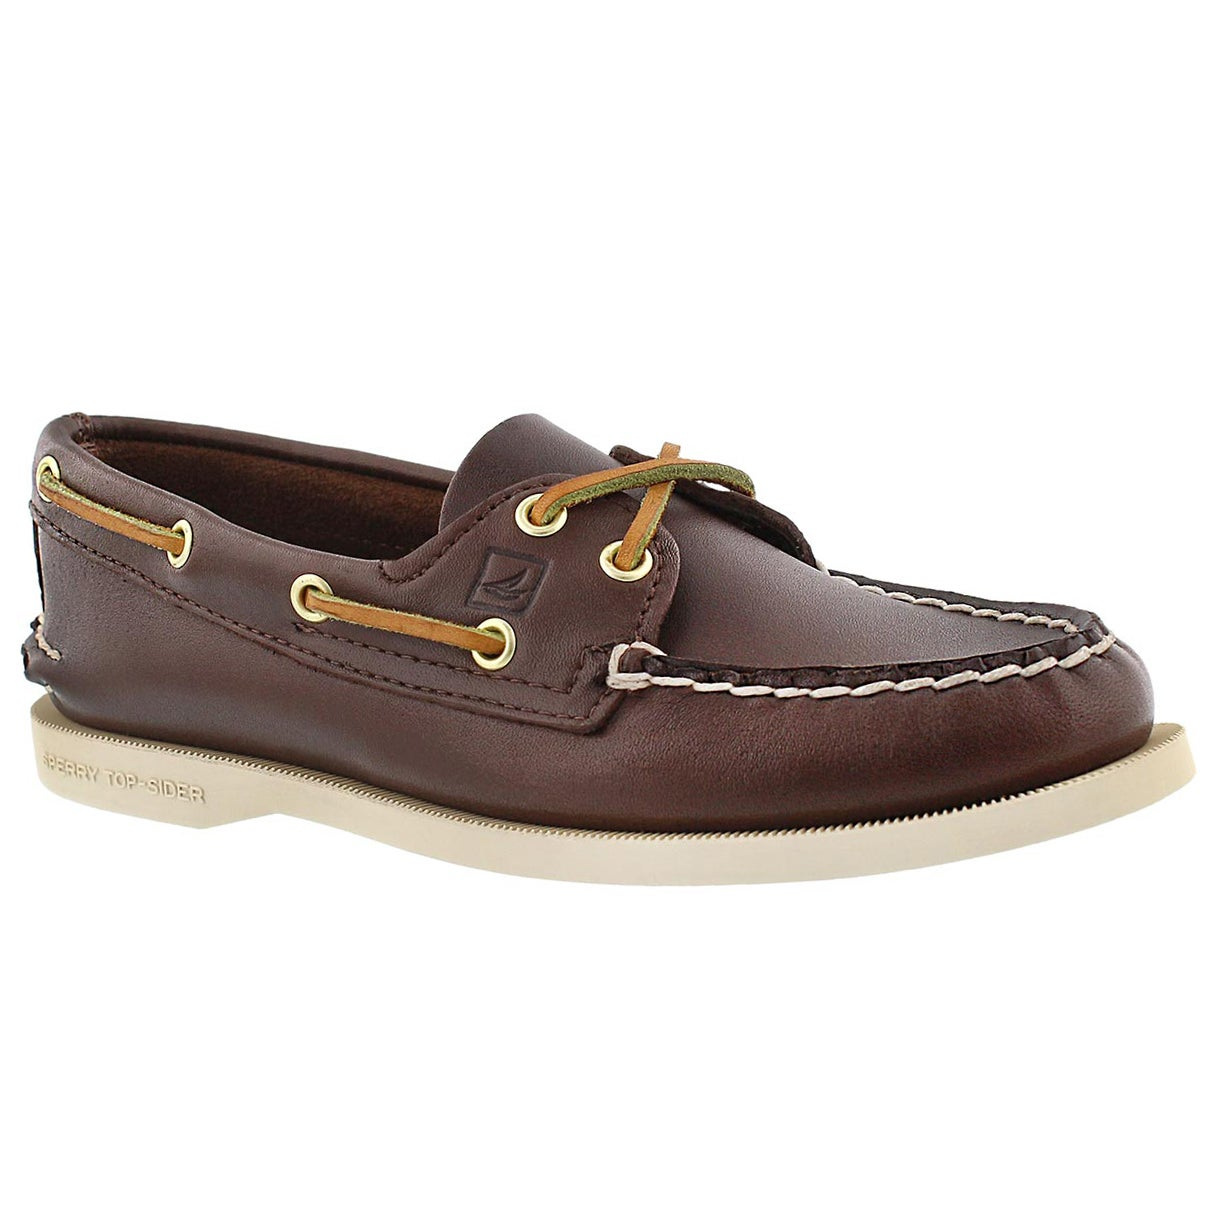 Womens boat shoes brown